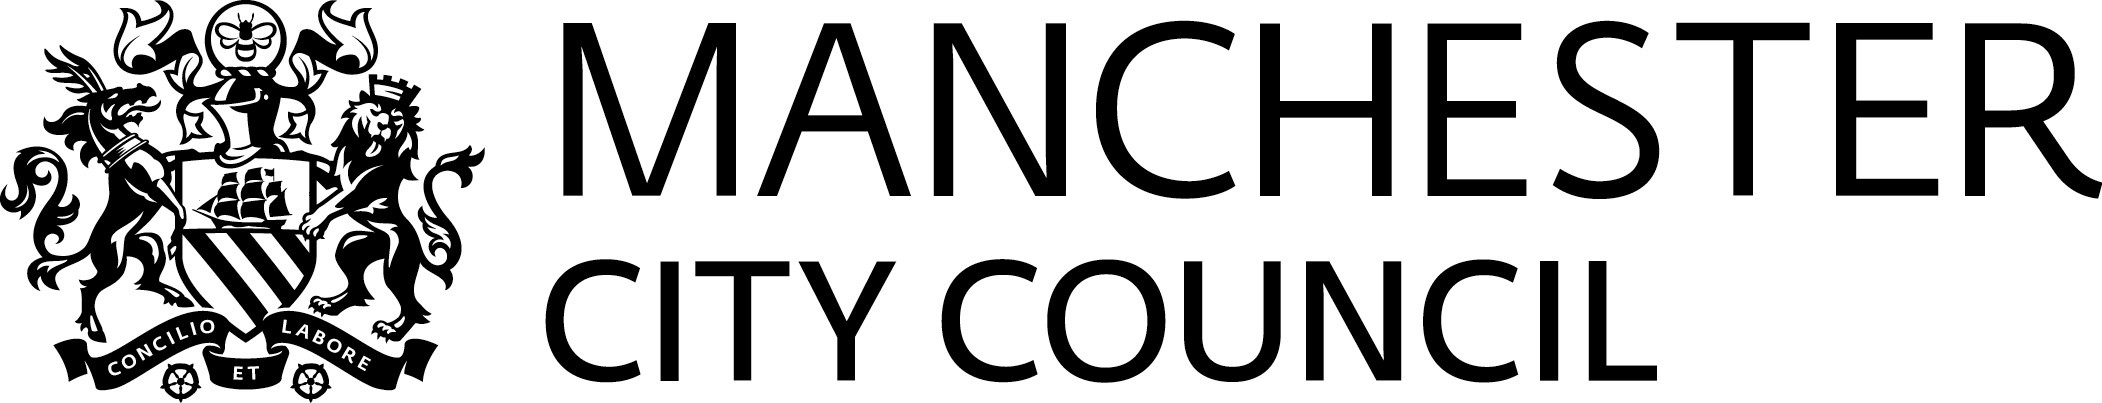 Manchester City Council - Logopedia, the logo and branding ...